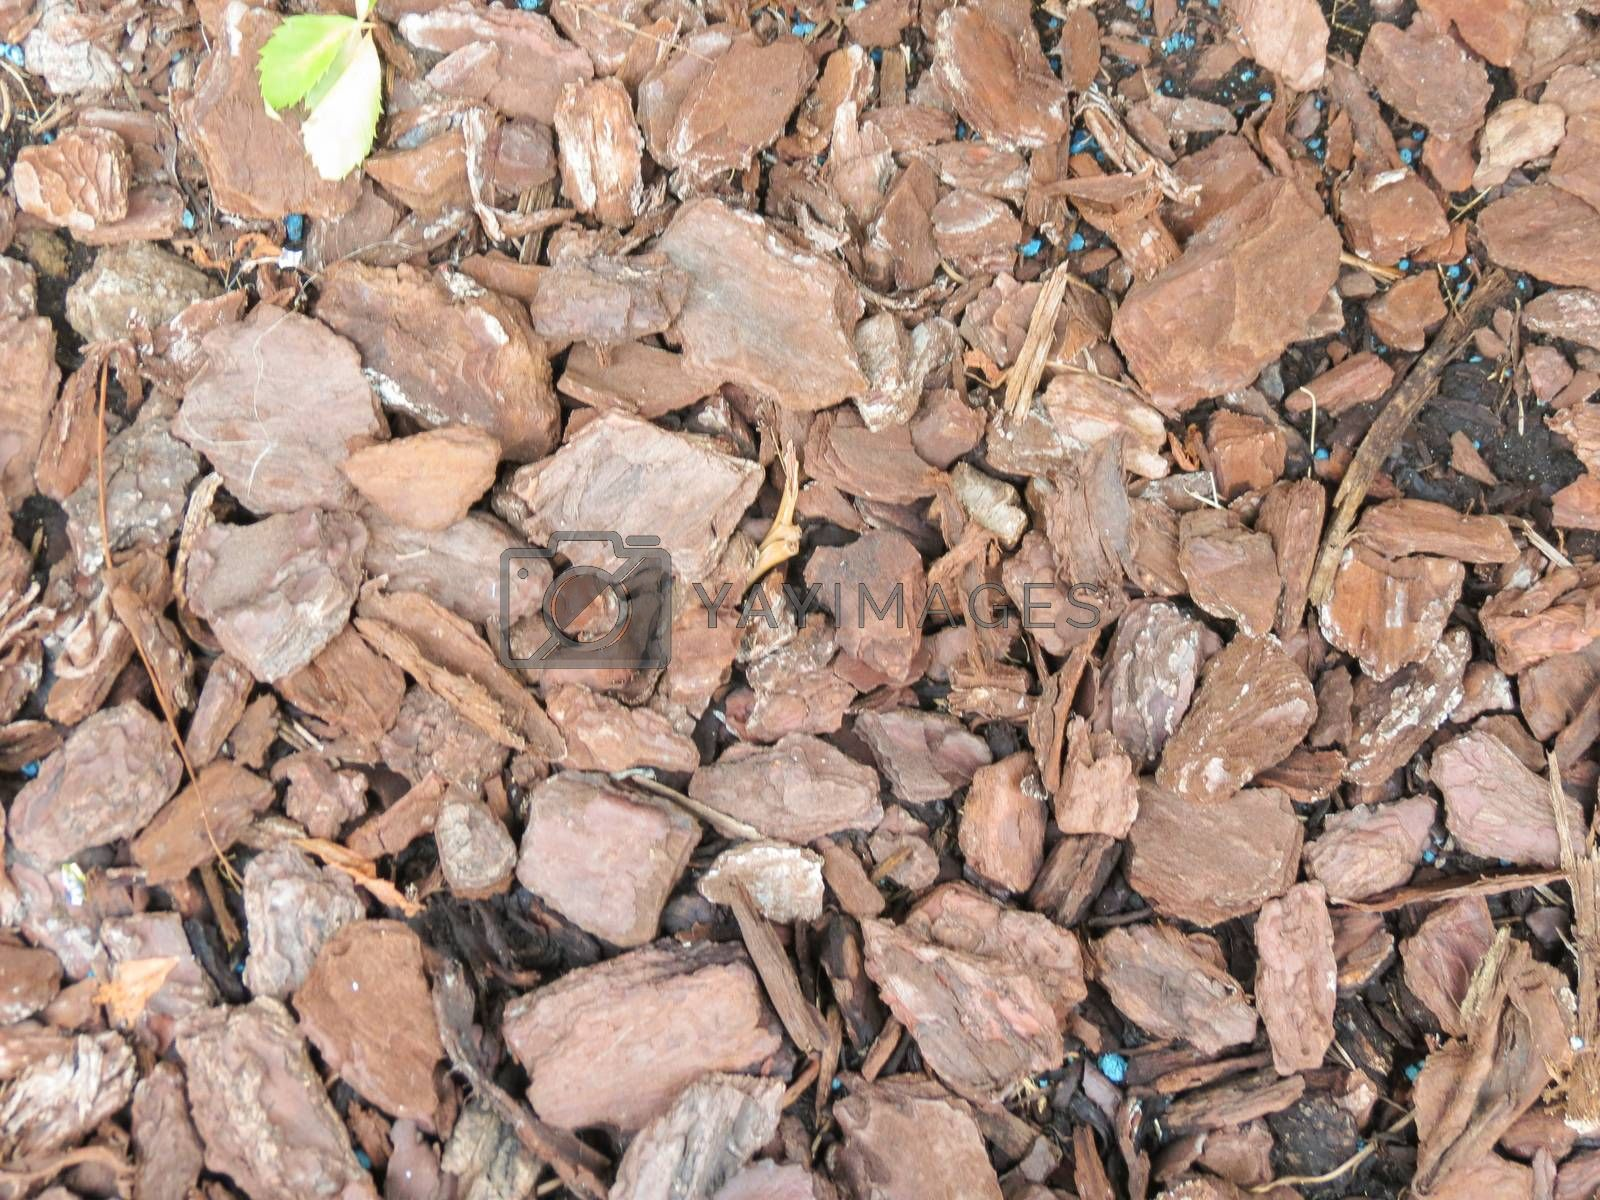 Royalty free image of bark mulch by paolo77